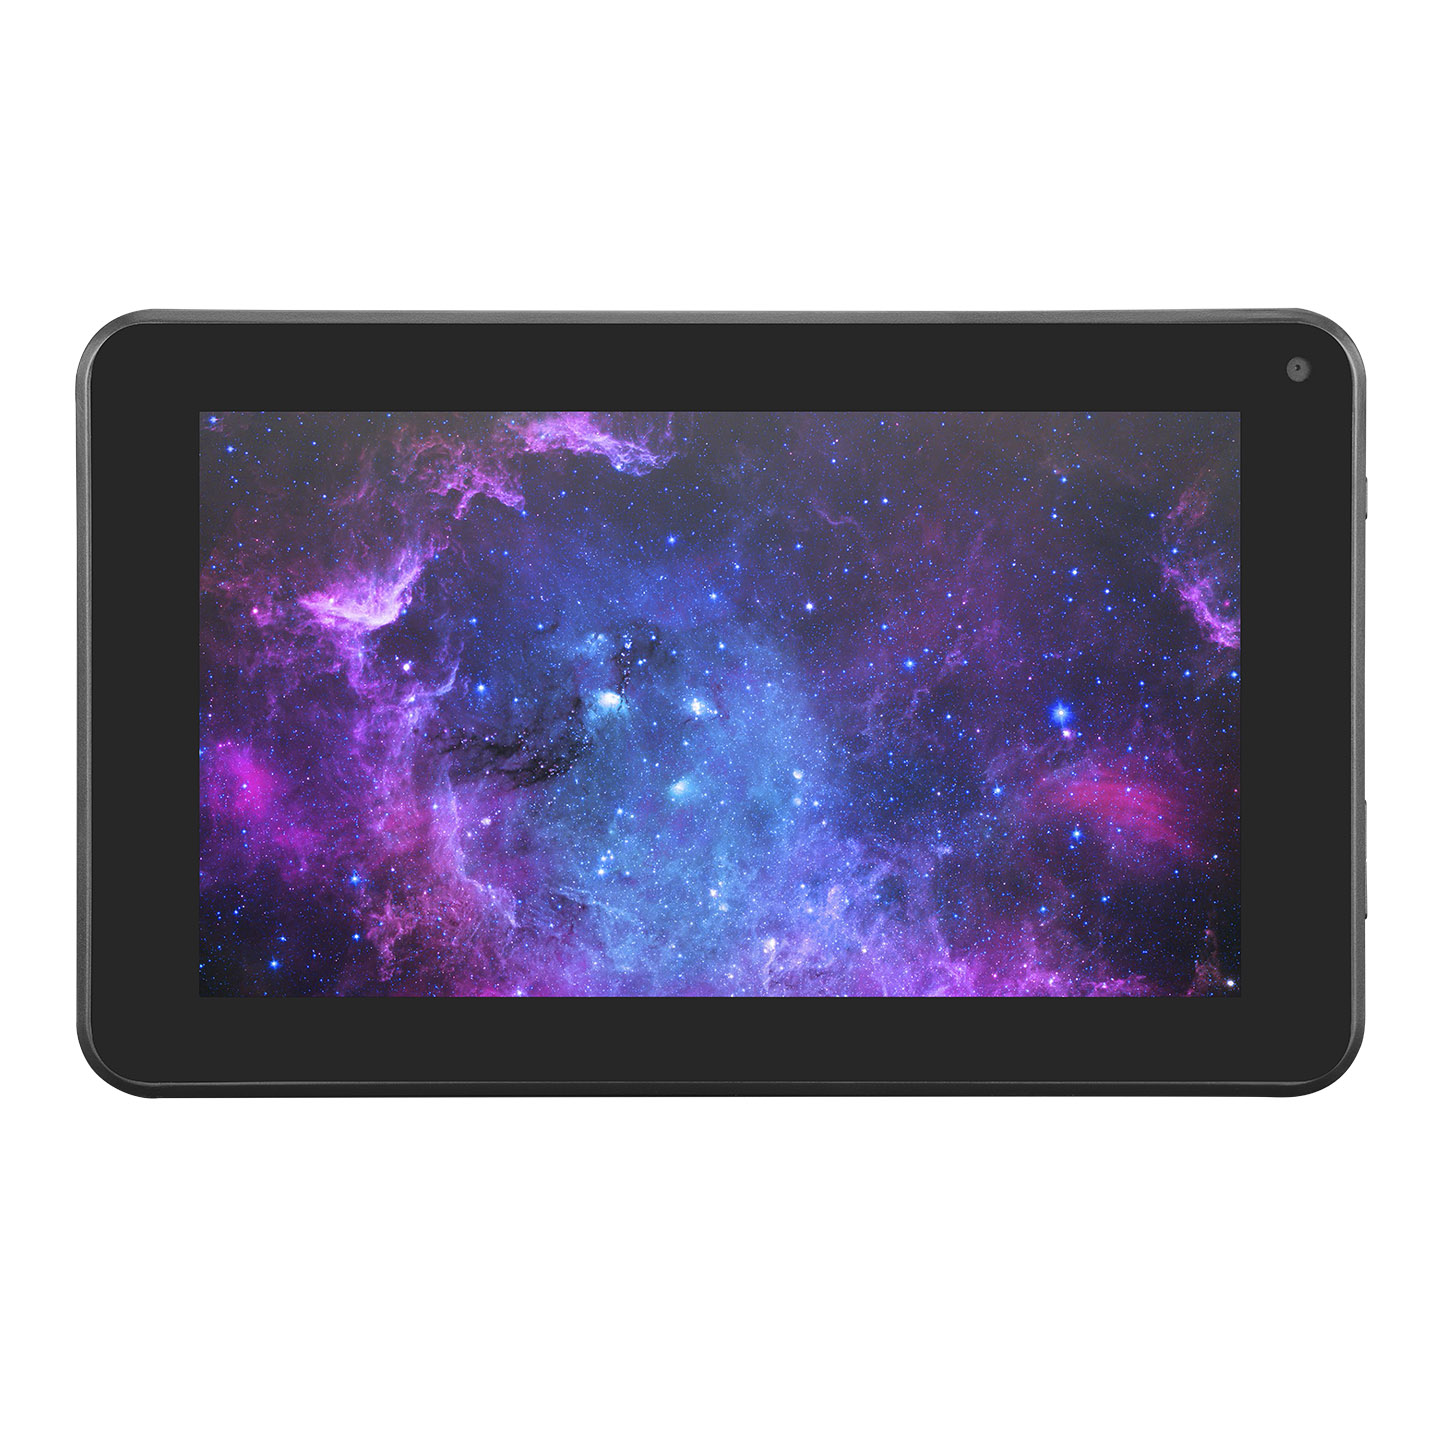 DENVER TAQ-70332 1GB+8GB Android 8.1GO 1.2GHZ 7 Android Tablet